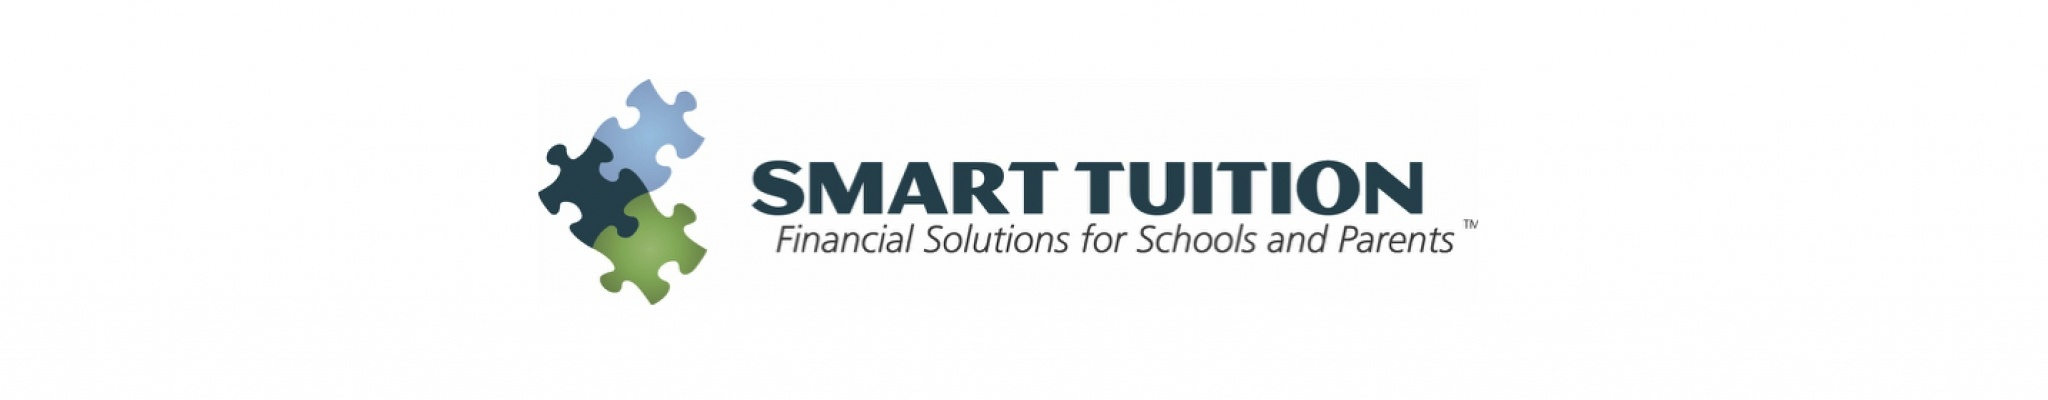 Smart Tuition: Intelligent School Financial Management